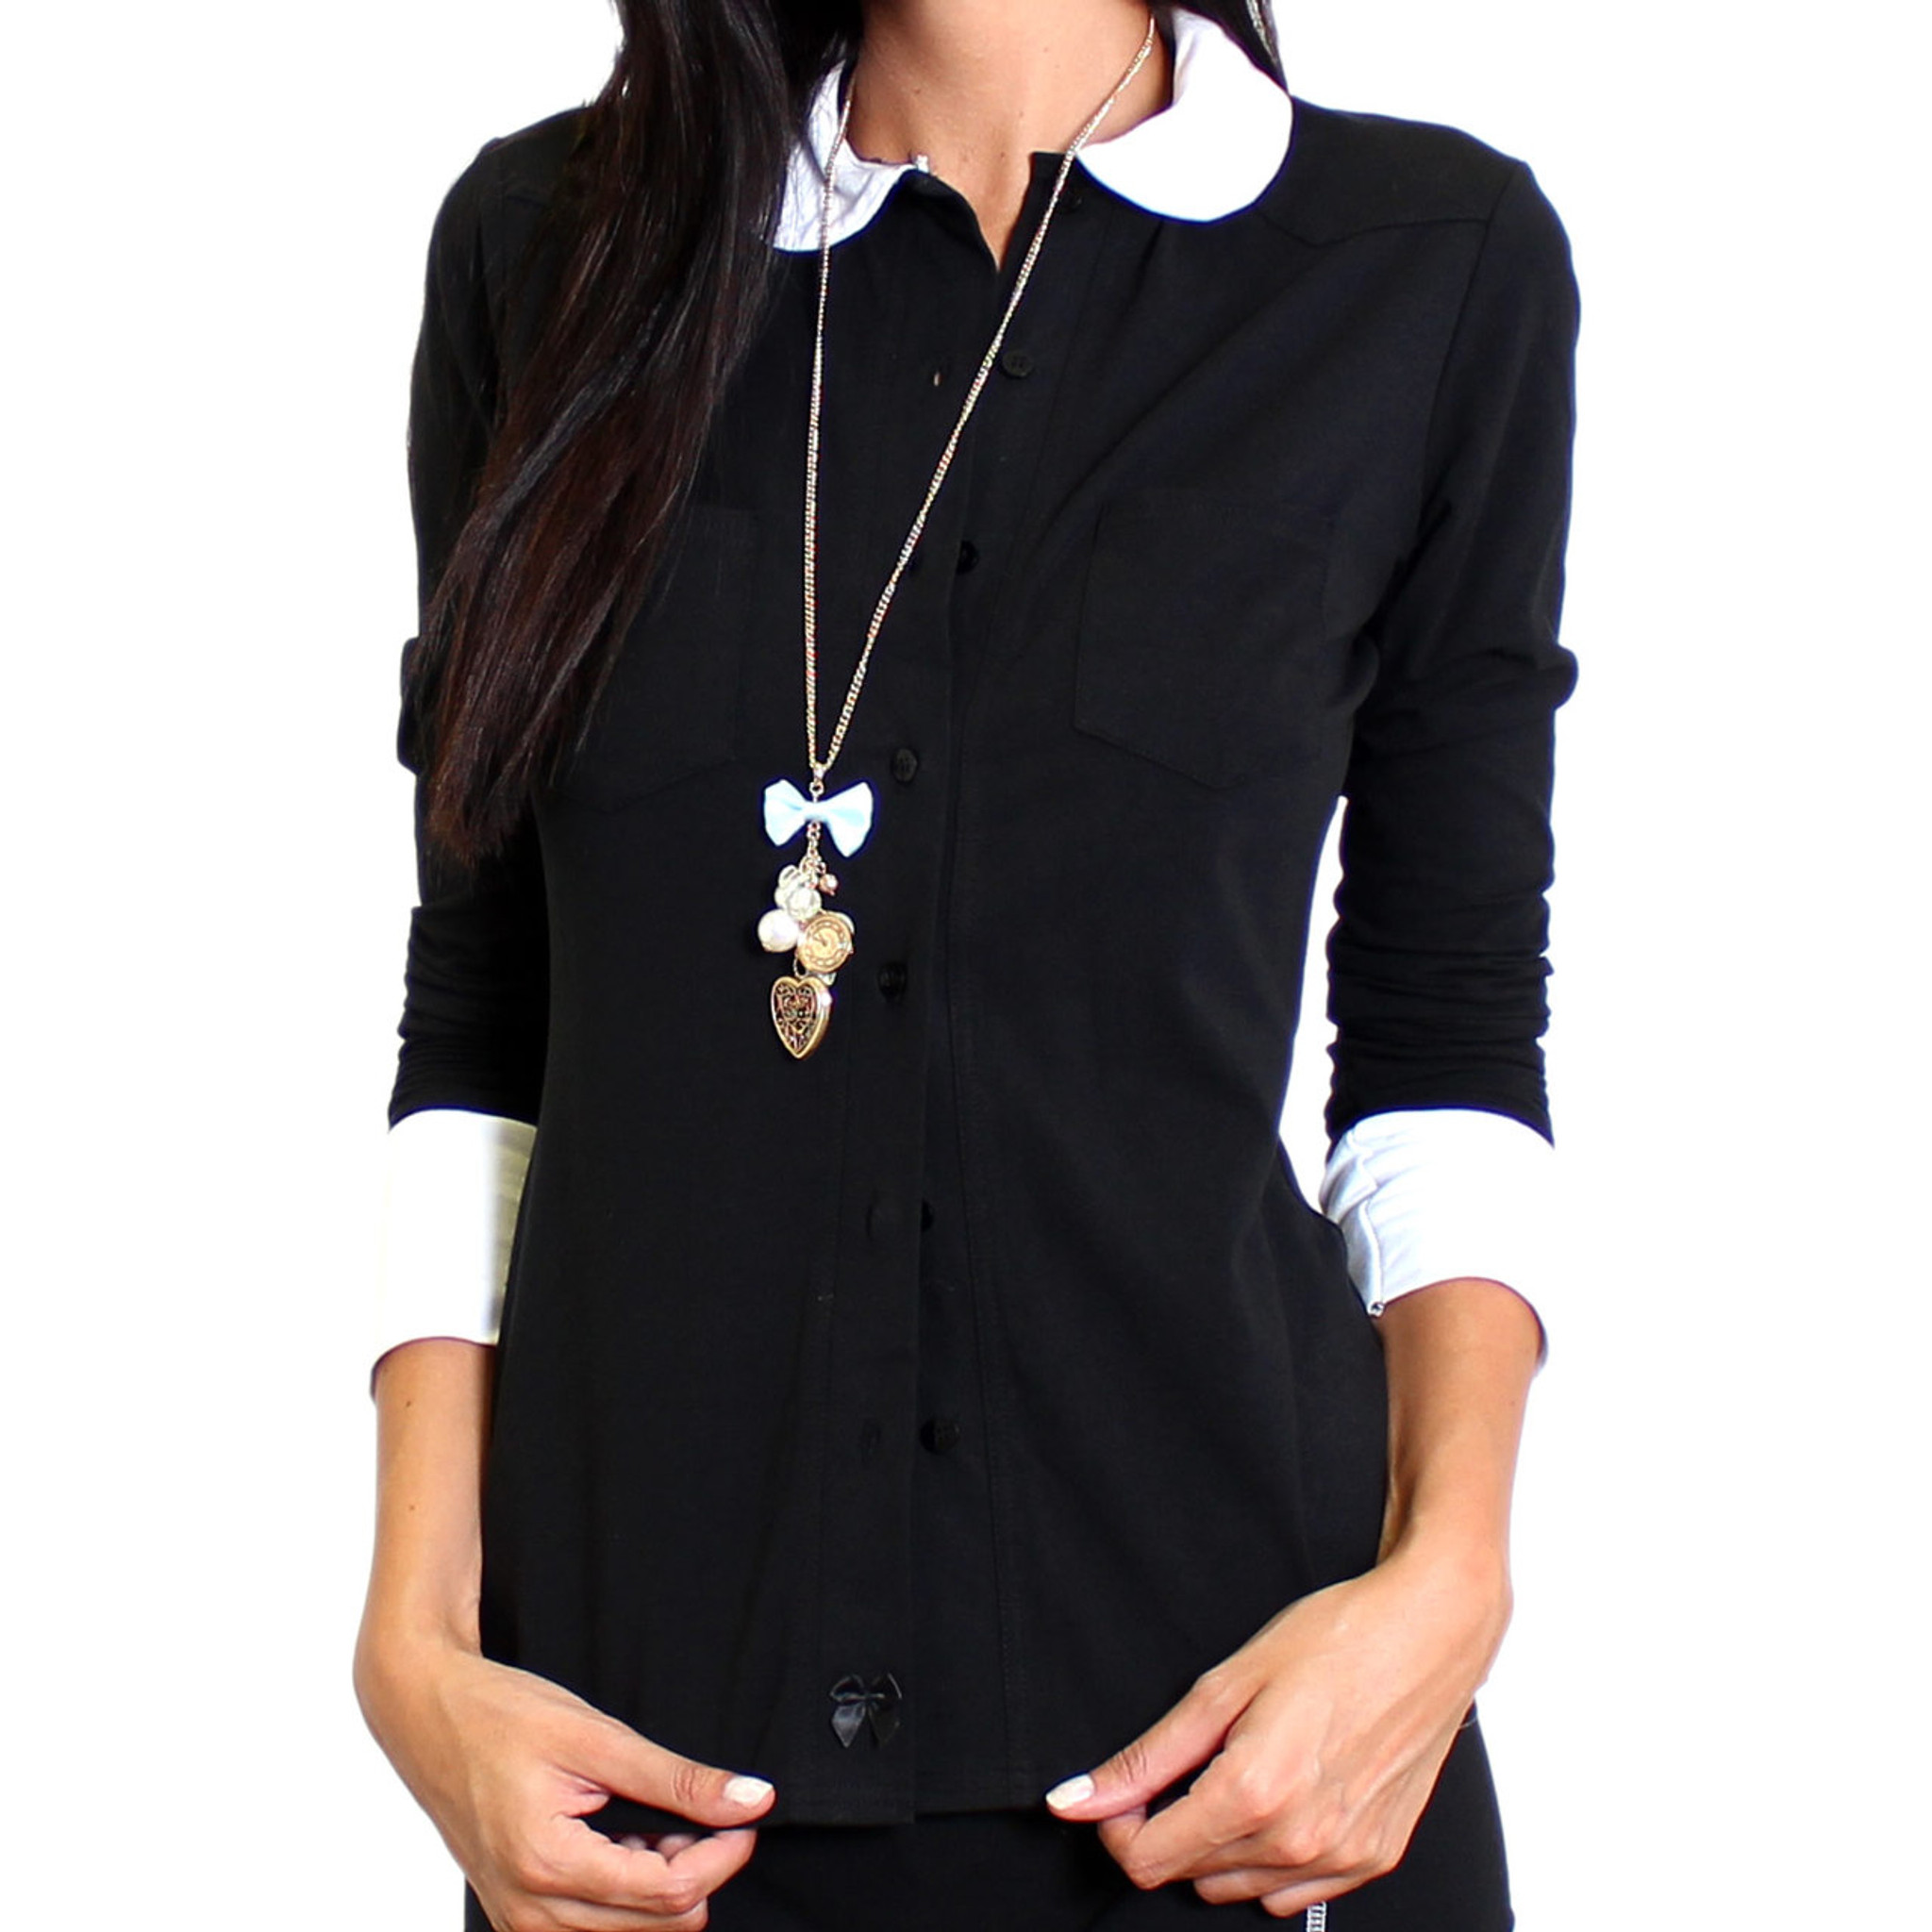 Black t shirt white collar - Womens Black Button Down Blouse With White Peter Pan Collar And Cuffs